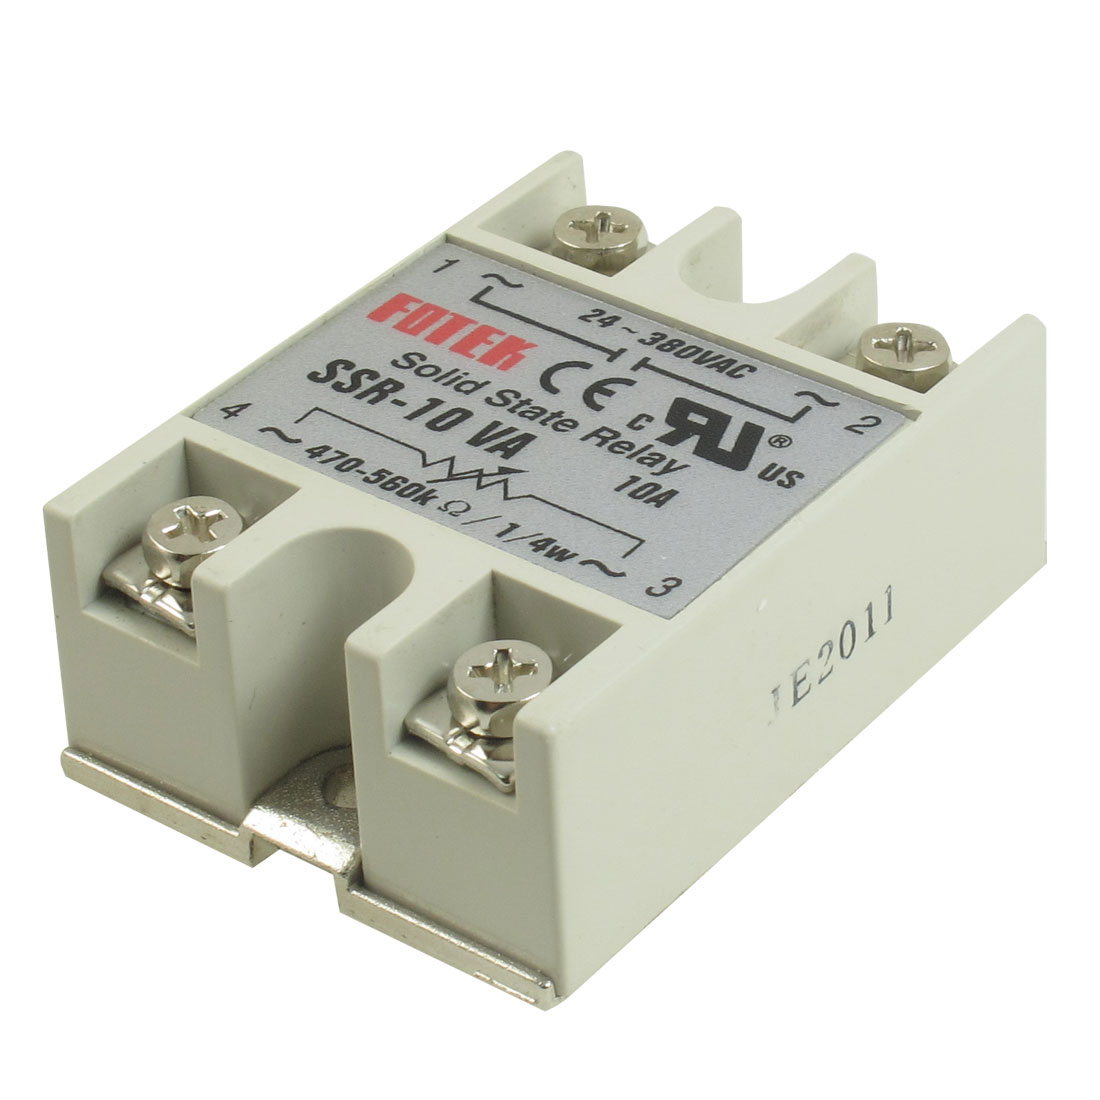 SSR-10VA AC 24-380V Solid State Relay Voltage Resistance Regulator